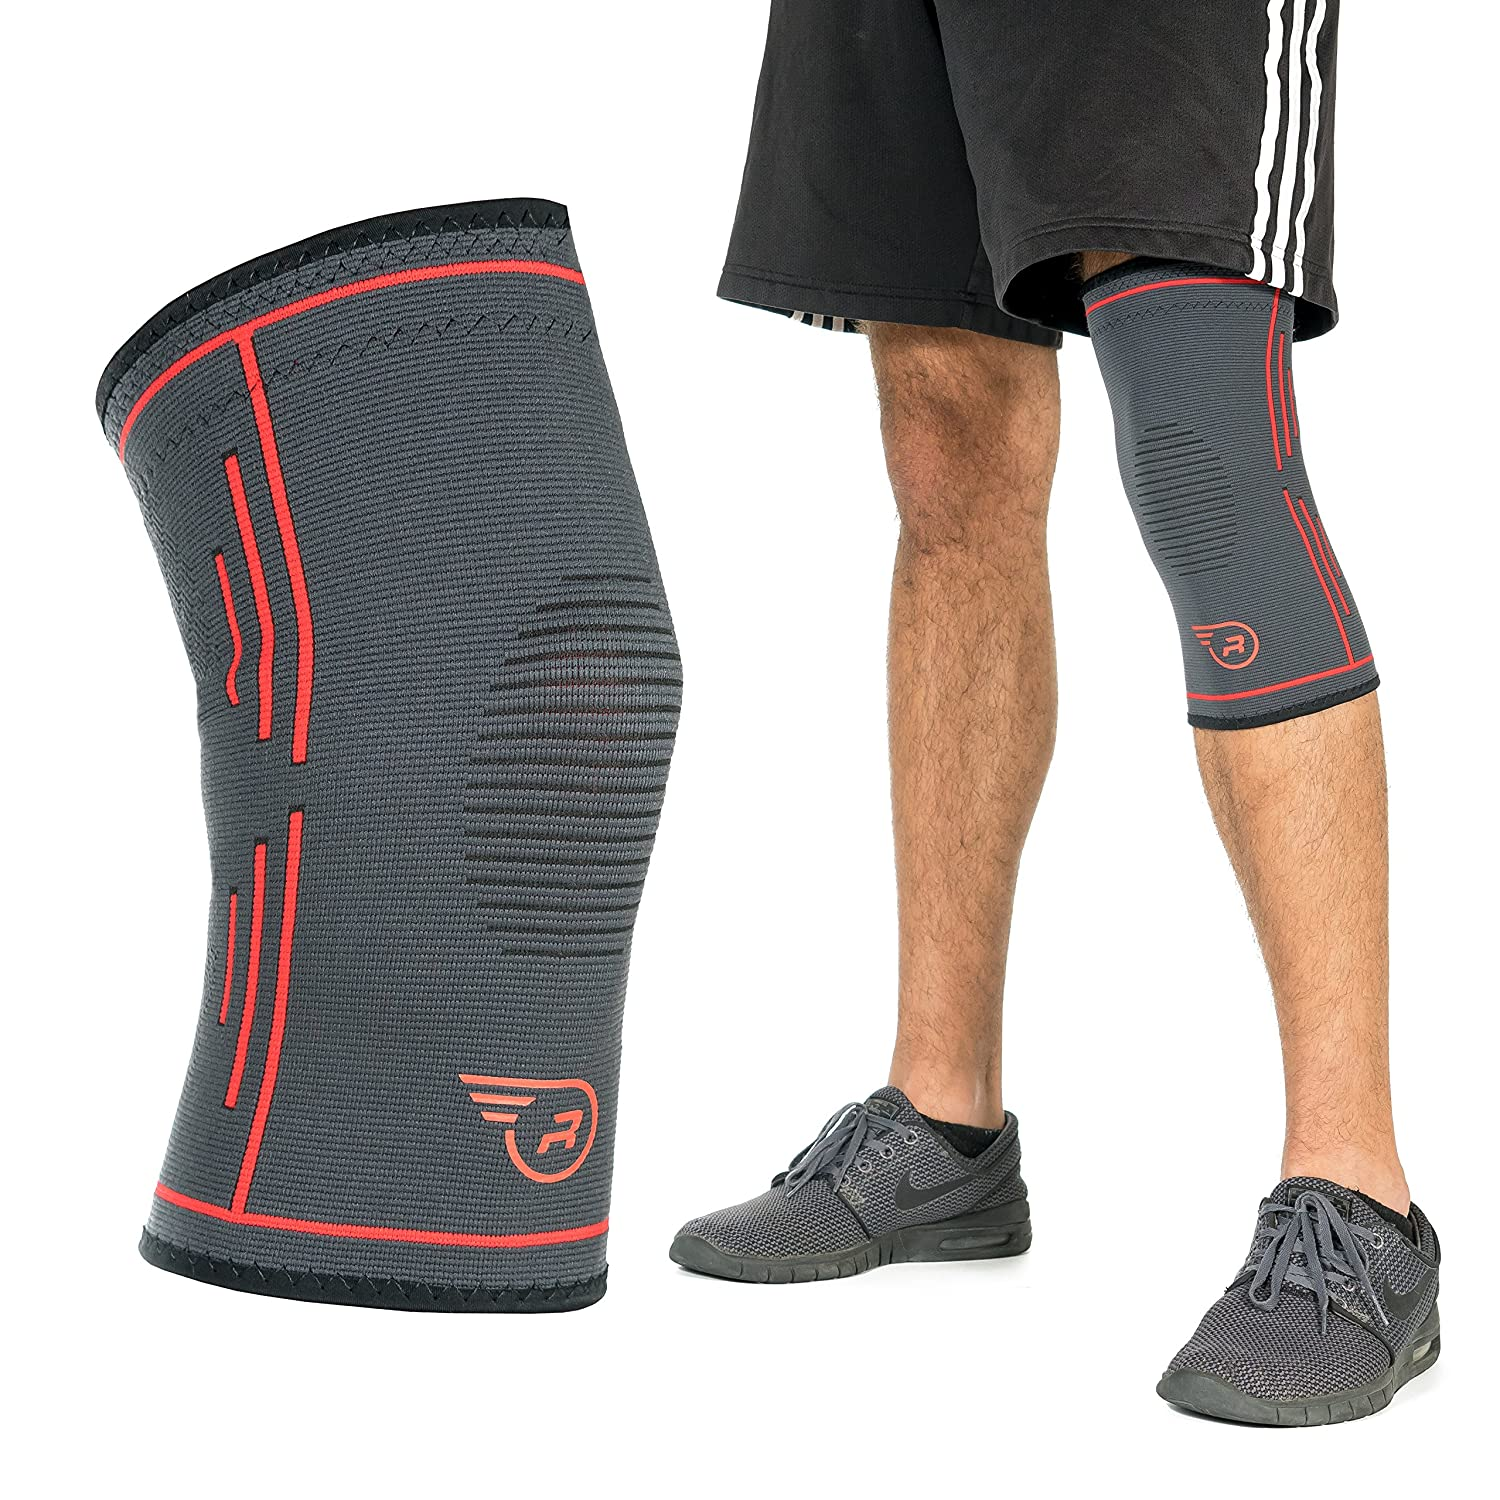 f7639b398c SUPERIOR PROTECTION FOR KNEES – Single knee compression sleeve for women  and men provides effective joint pain relief and helps relieve symptoms  associated ...